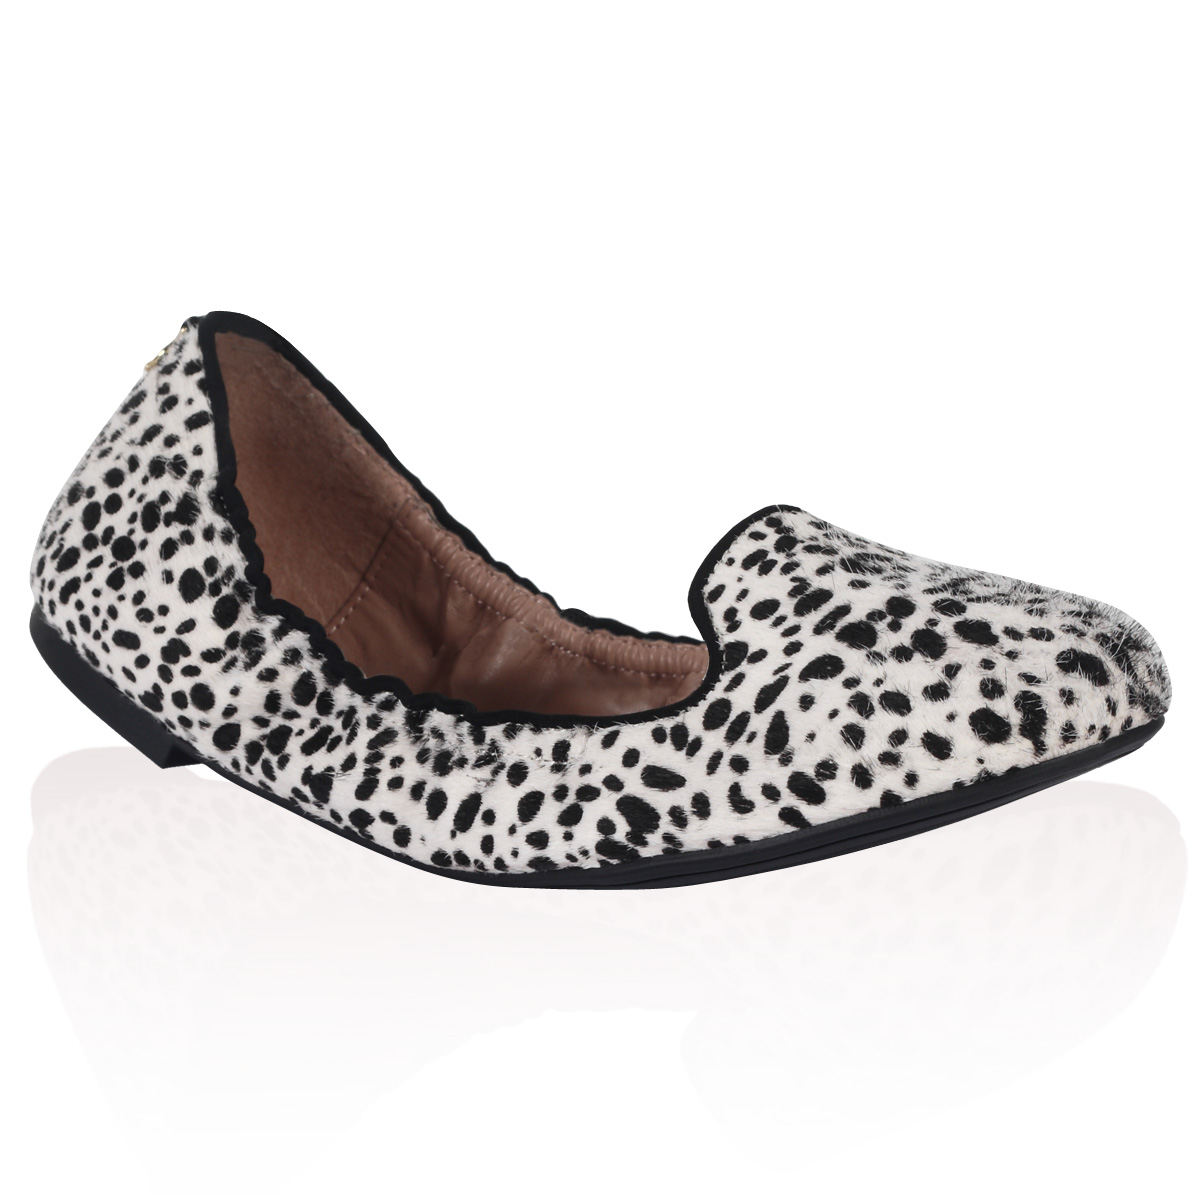 NEW-DUNE-LADIES-MEXXYS-BLACK-WHITE-DALMATION-FLAT-BALLERINA-PUMPS-SHOES-SIZE-3-8